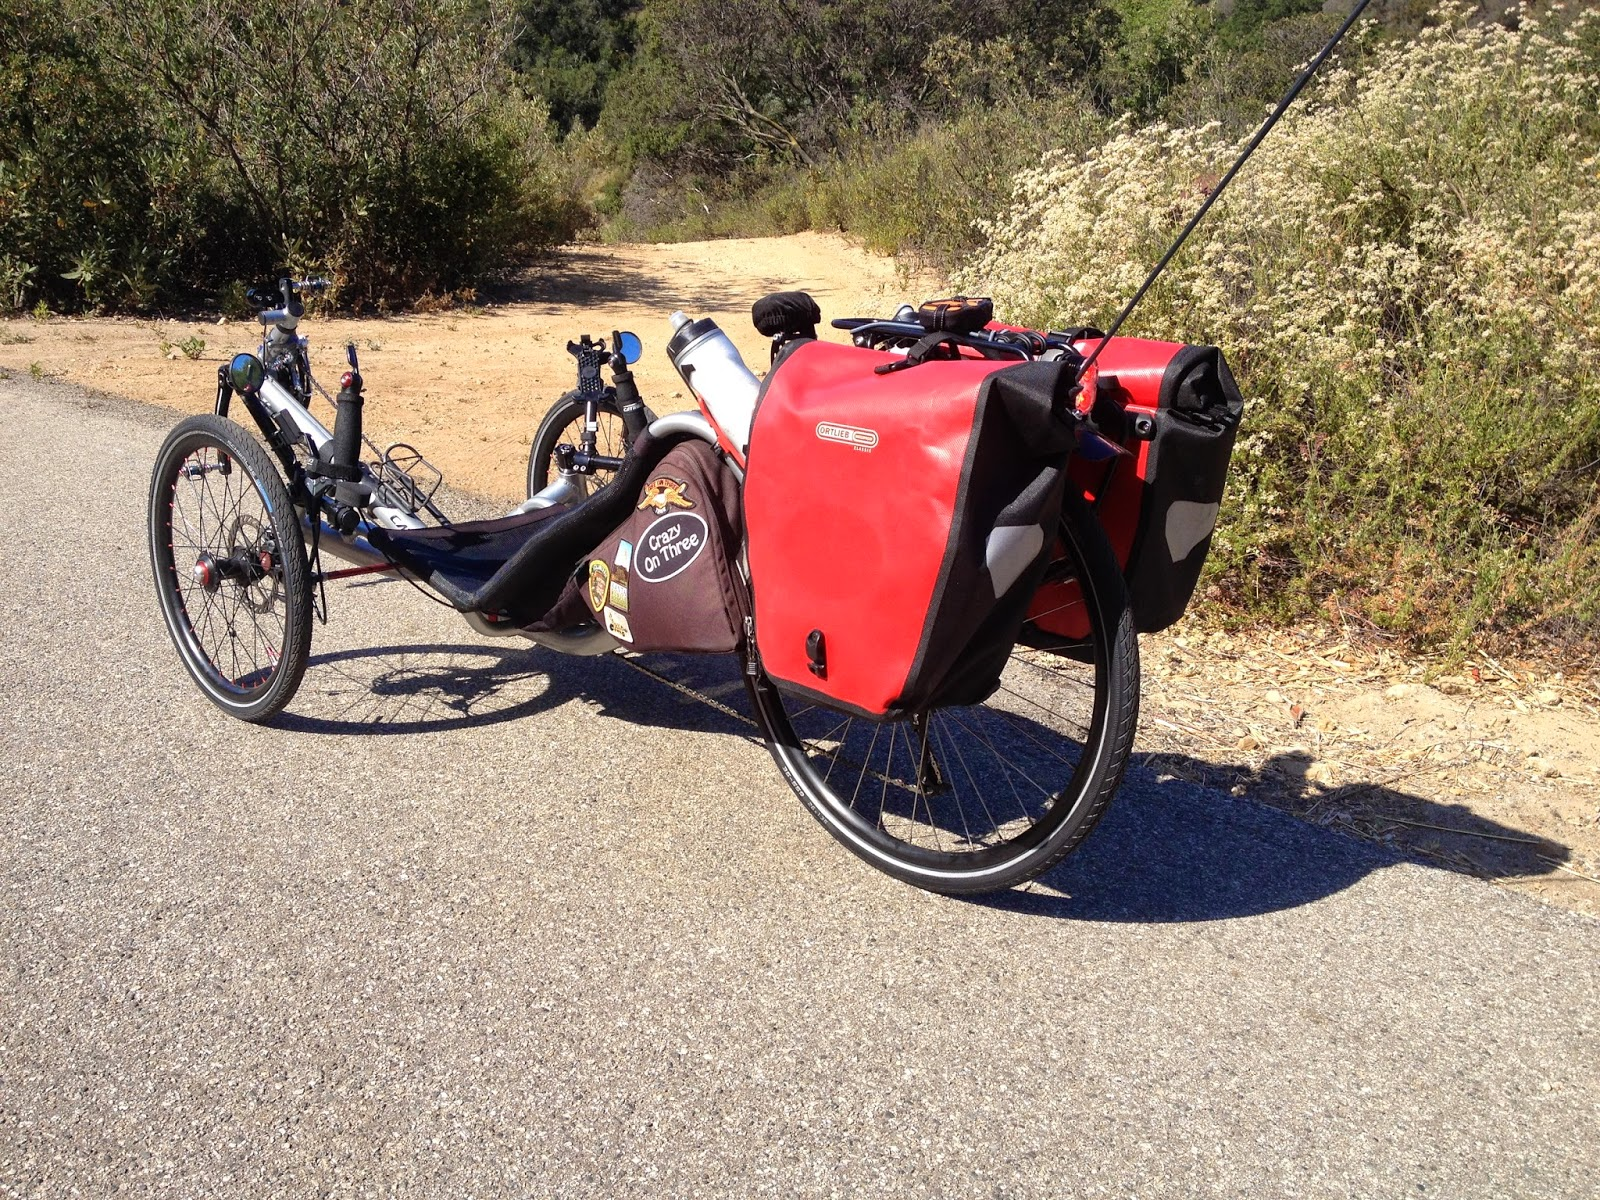 683024c997c5 I eliminated the trunk bag and now I put my daily ride stuff in the side  bags with plenty of room to spare. I usually ride with the Ortlieb panniers  so I ...